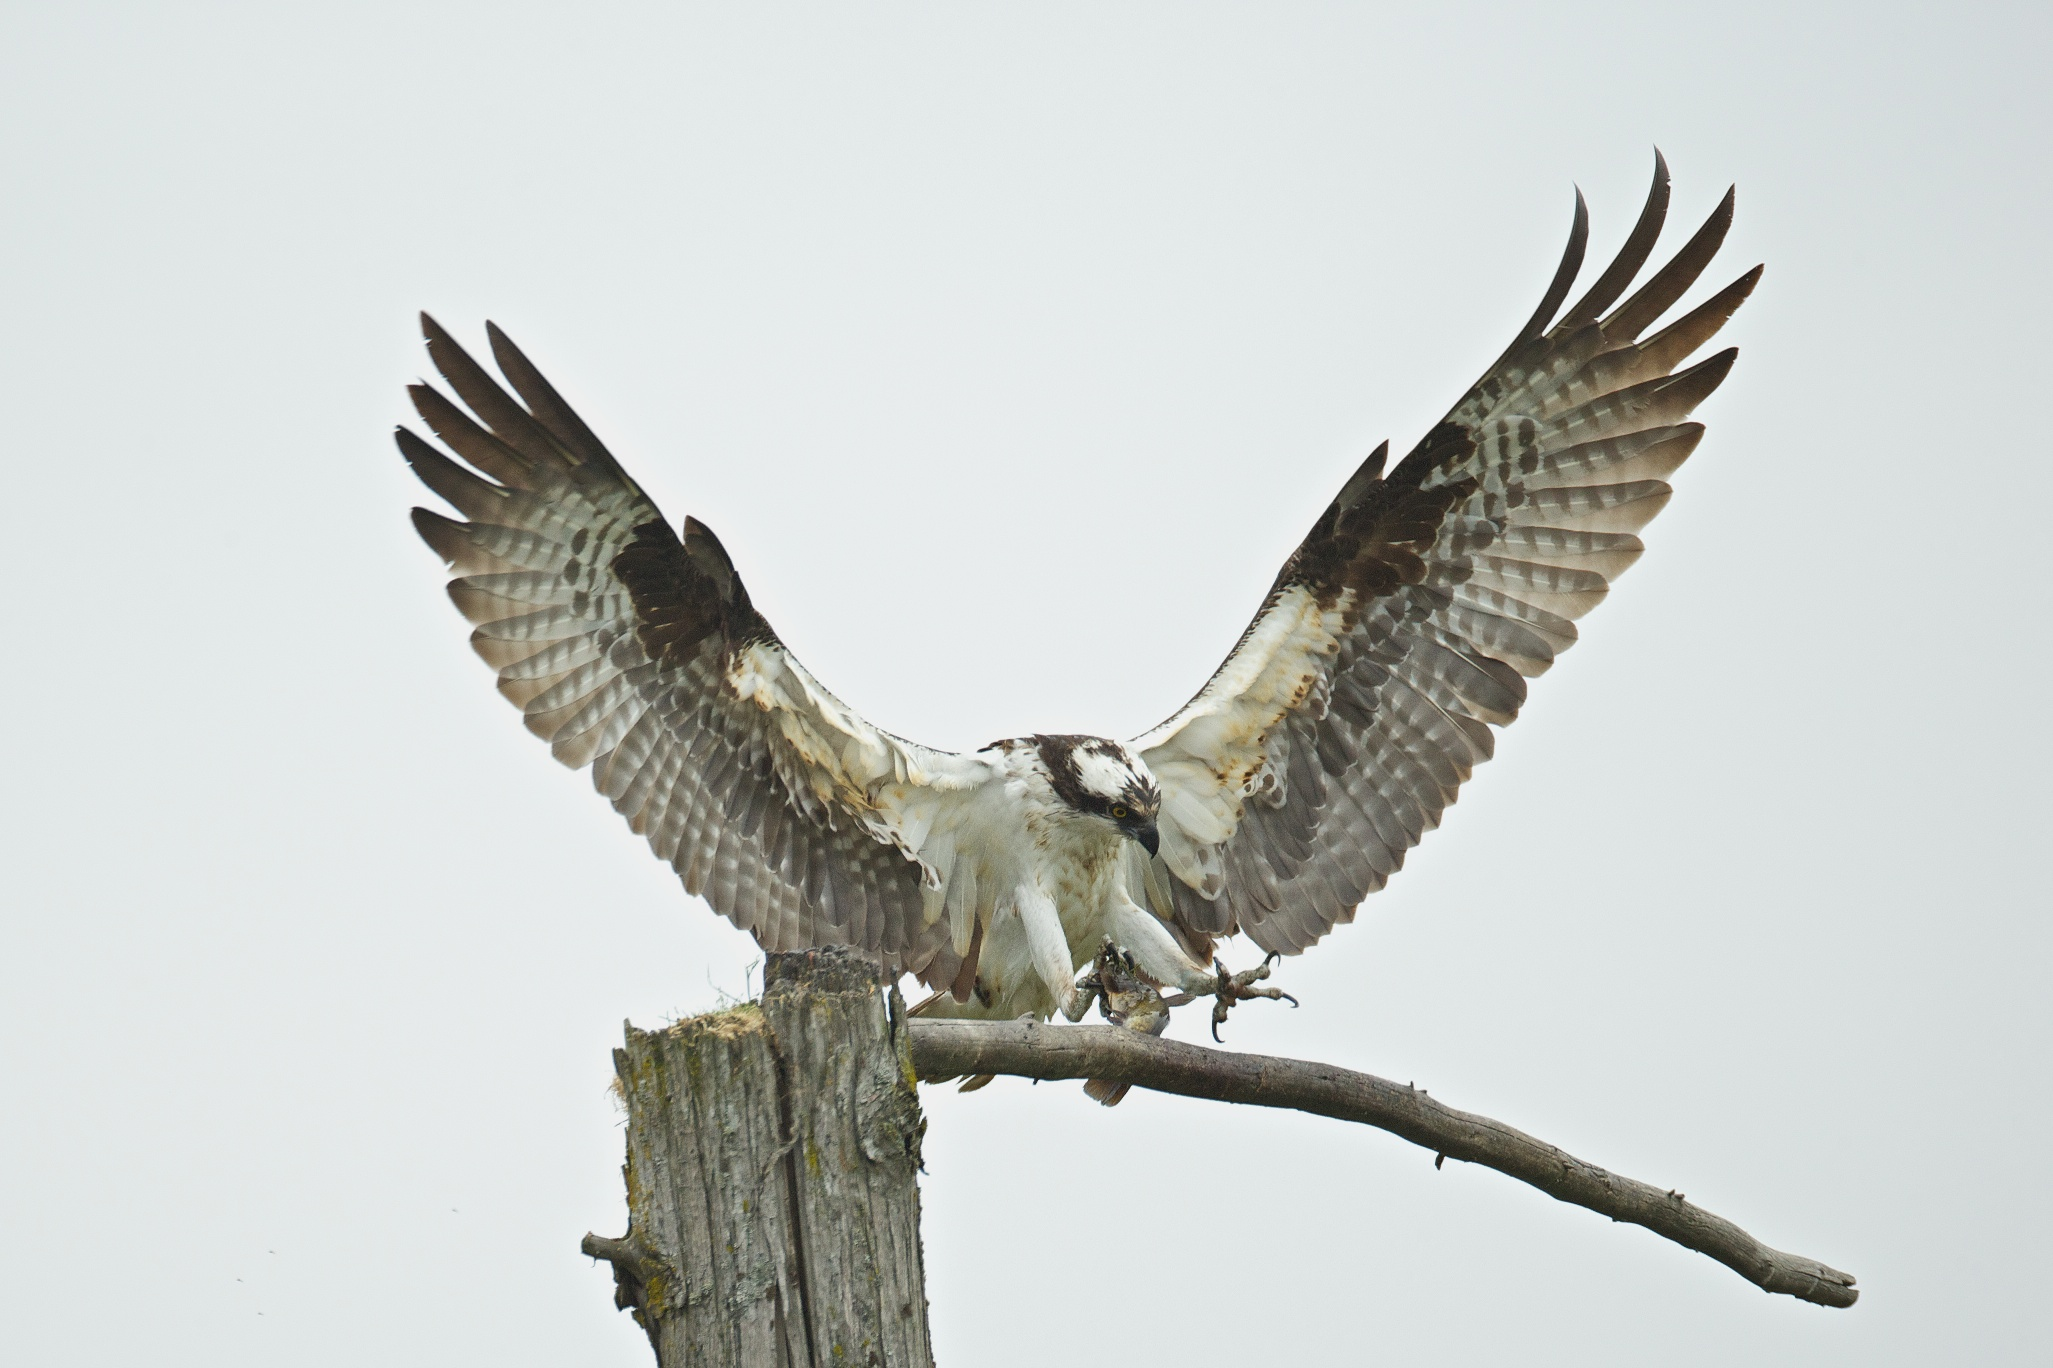 osprey eating fish 3